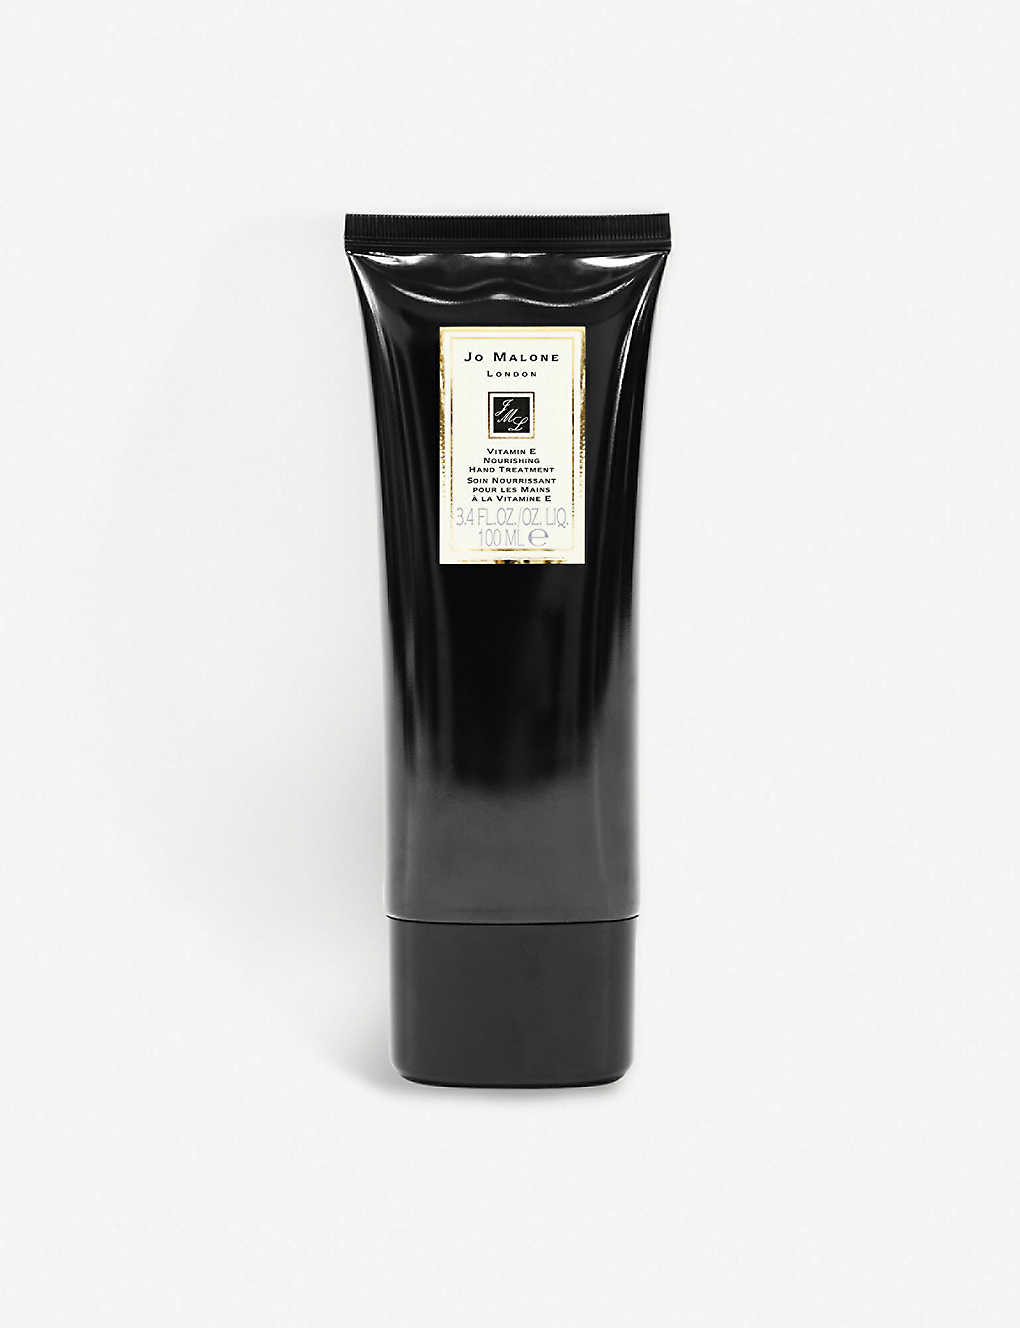 JO MALONE LONDON: Vitamin E Nourishing hand treatment 100ml